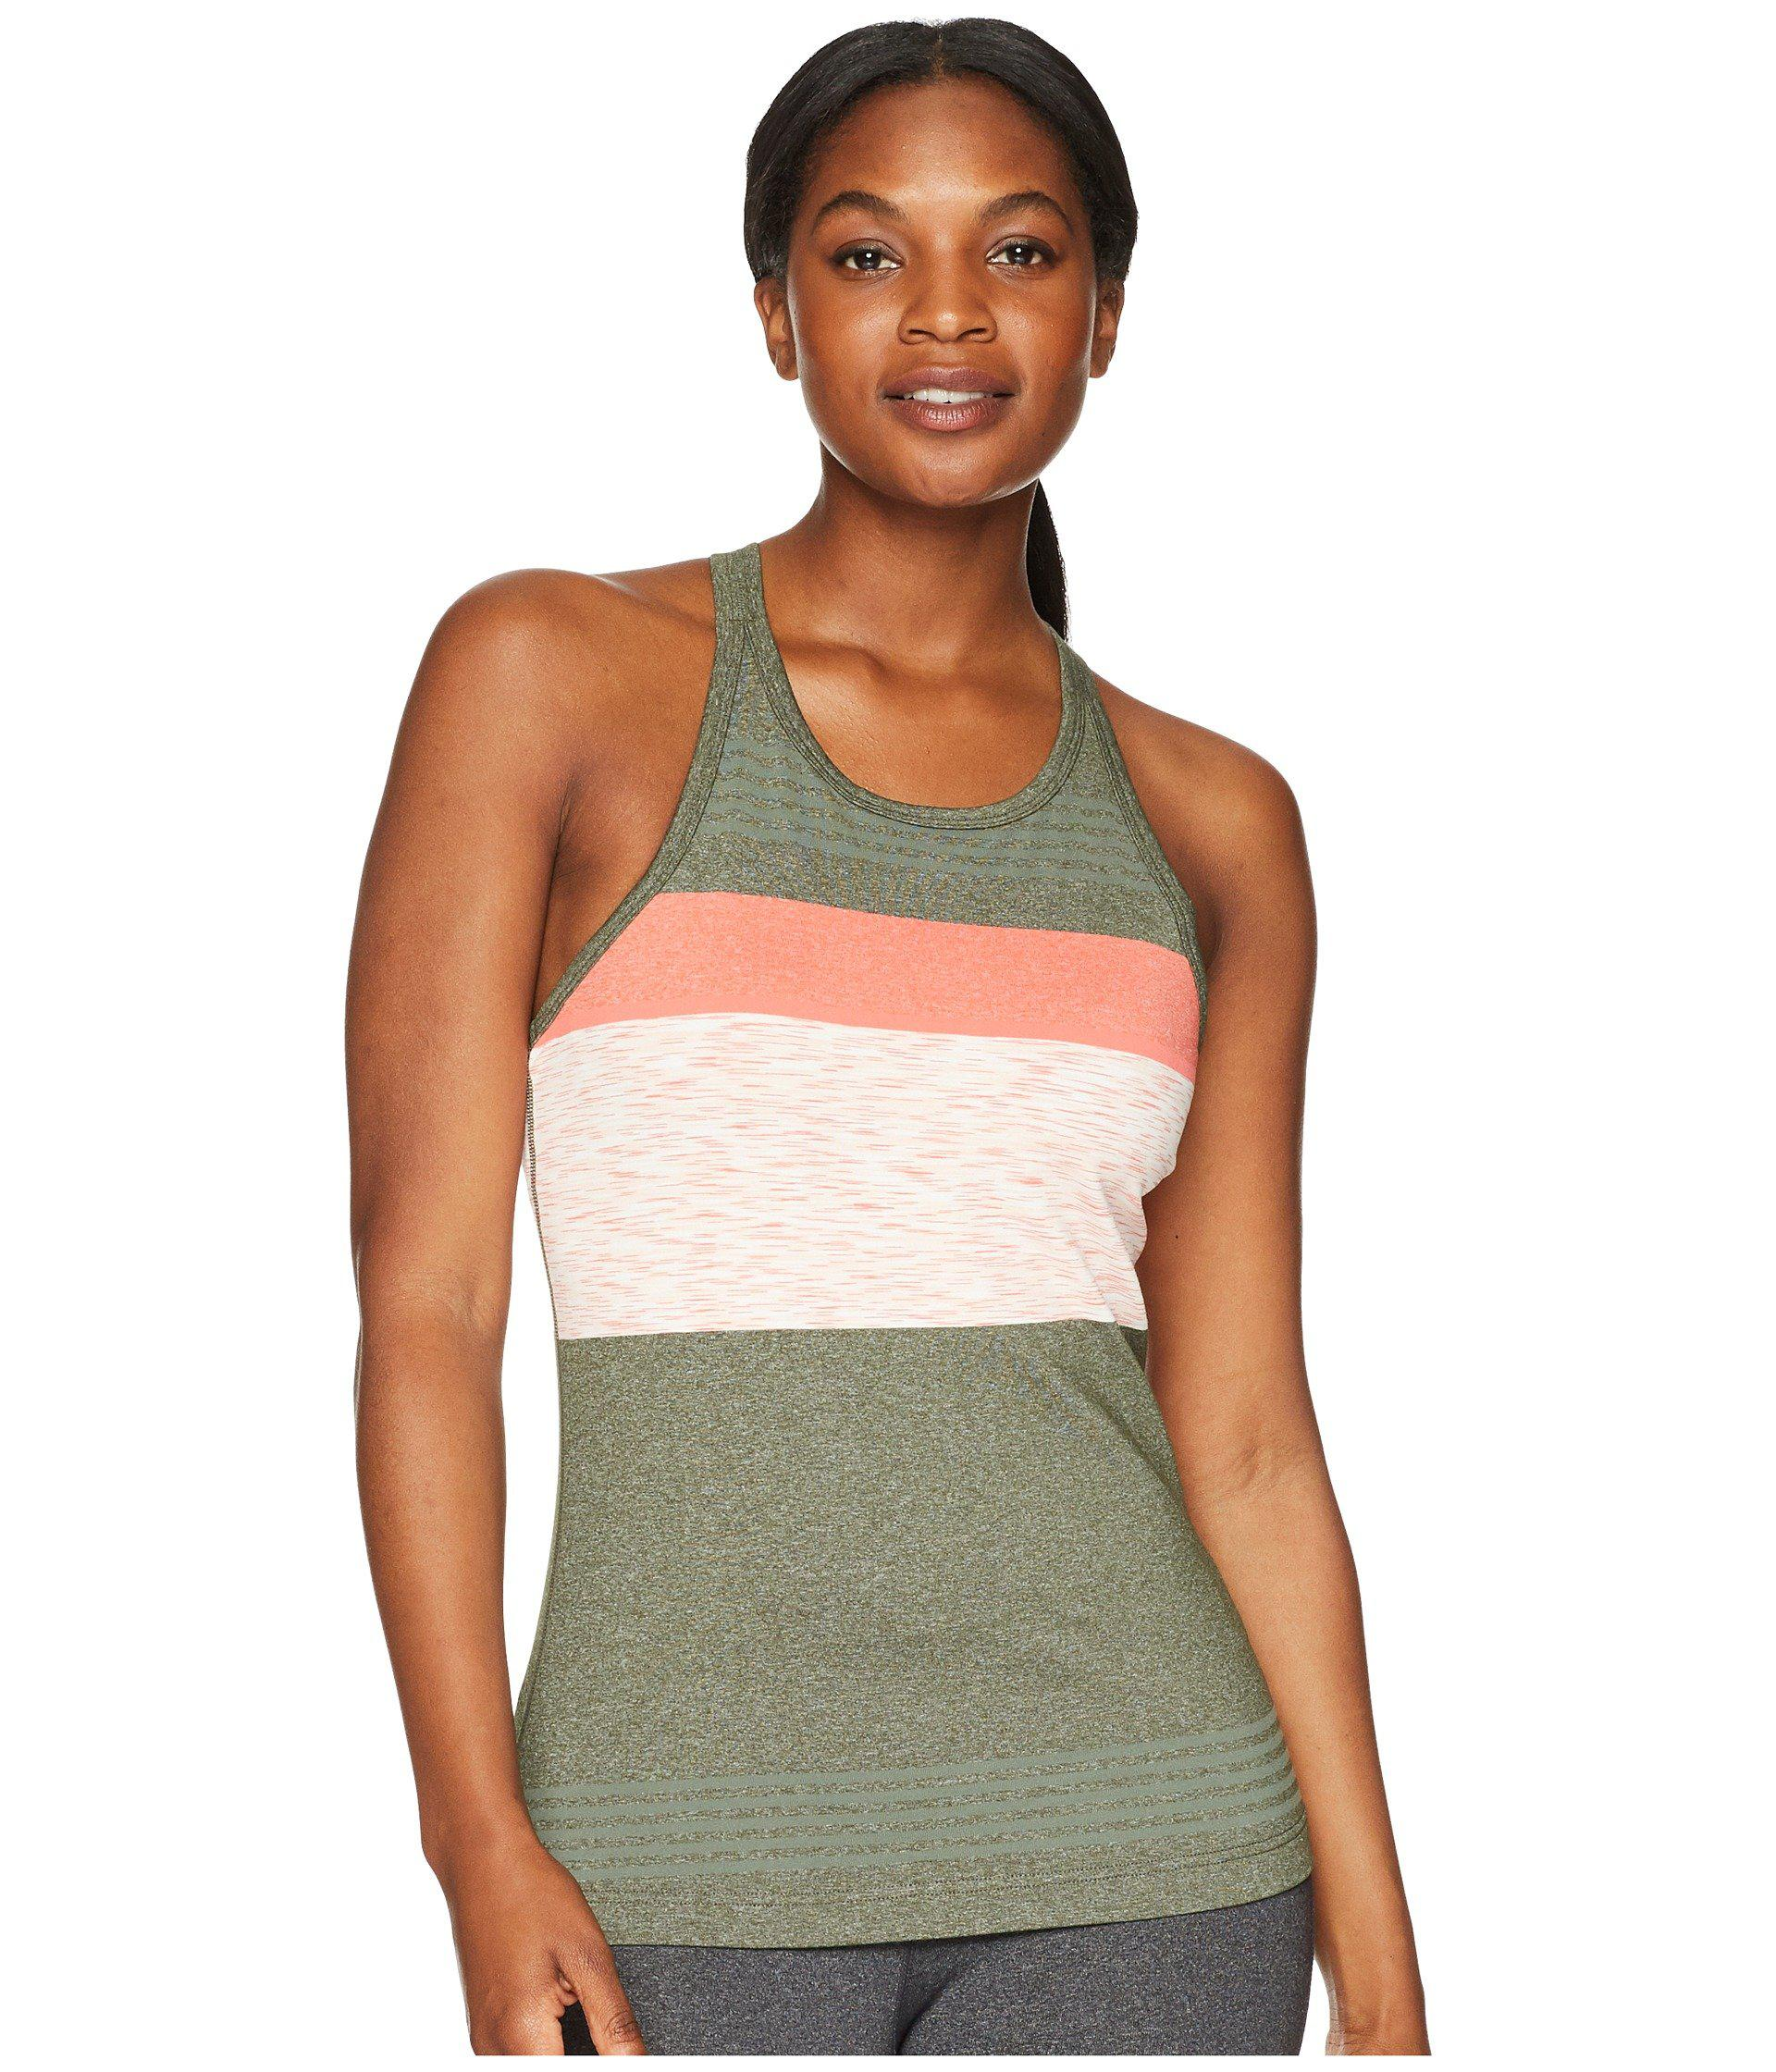 b05faa8c575c99 Lyst - Prana Alois Top in Green - Save 36.170212765957444%